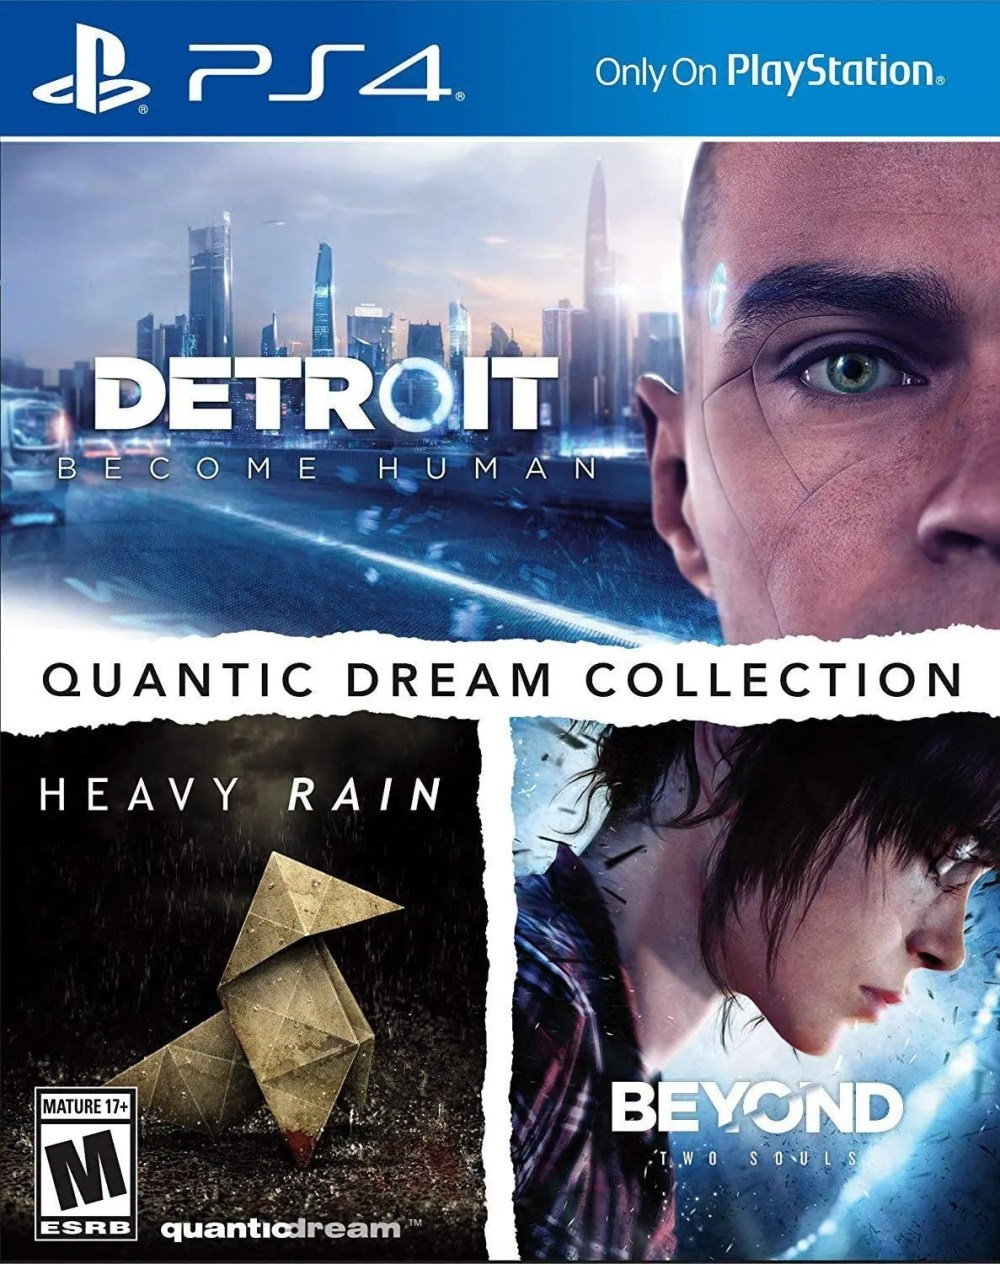 Quantic Dream Collection for PS4